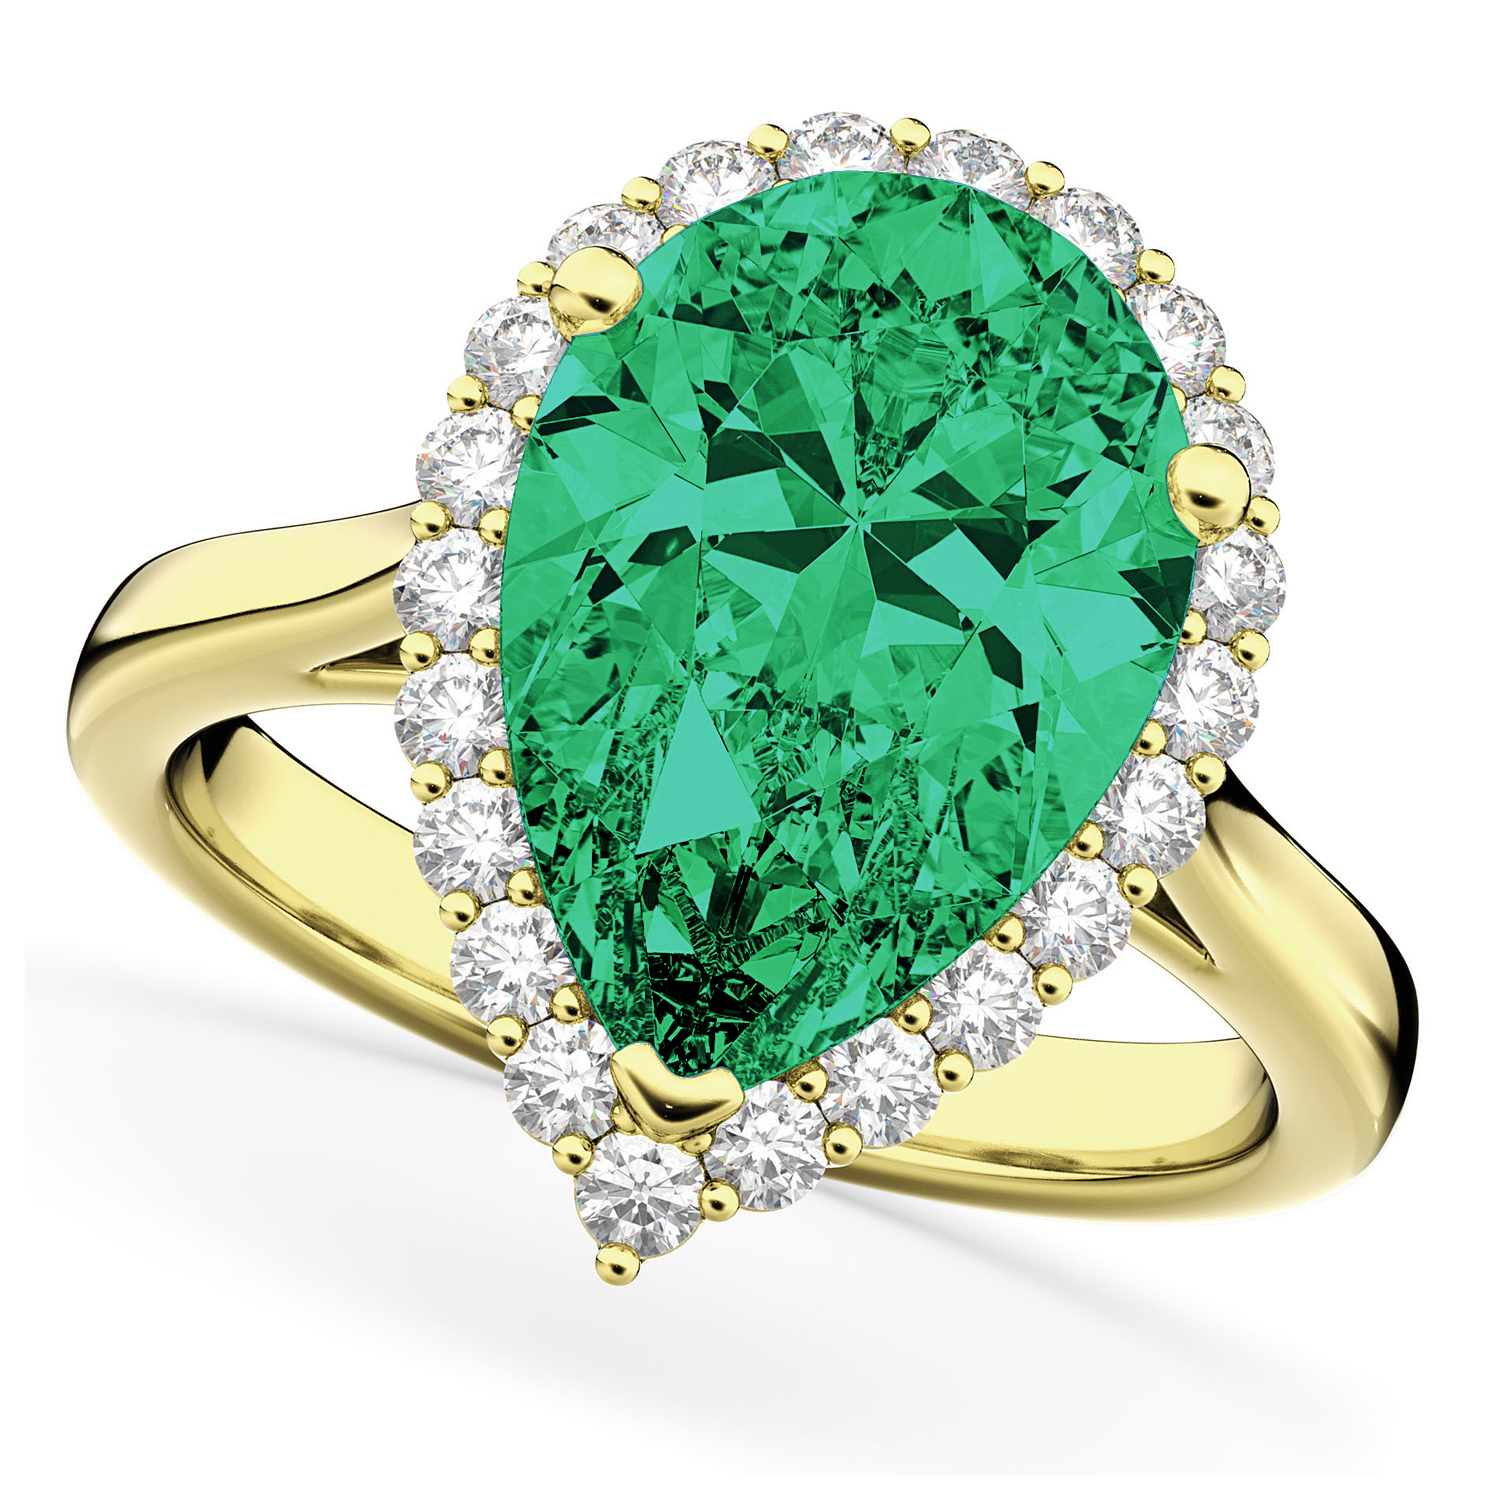 Pear Cut Halo Emerald & Diamond Engagement Ring 14K Yellow Gold 6.54ct